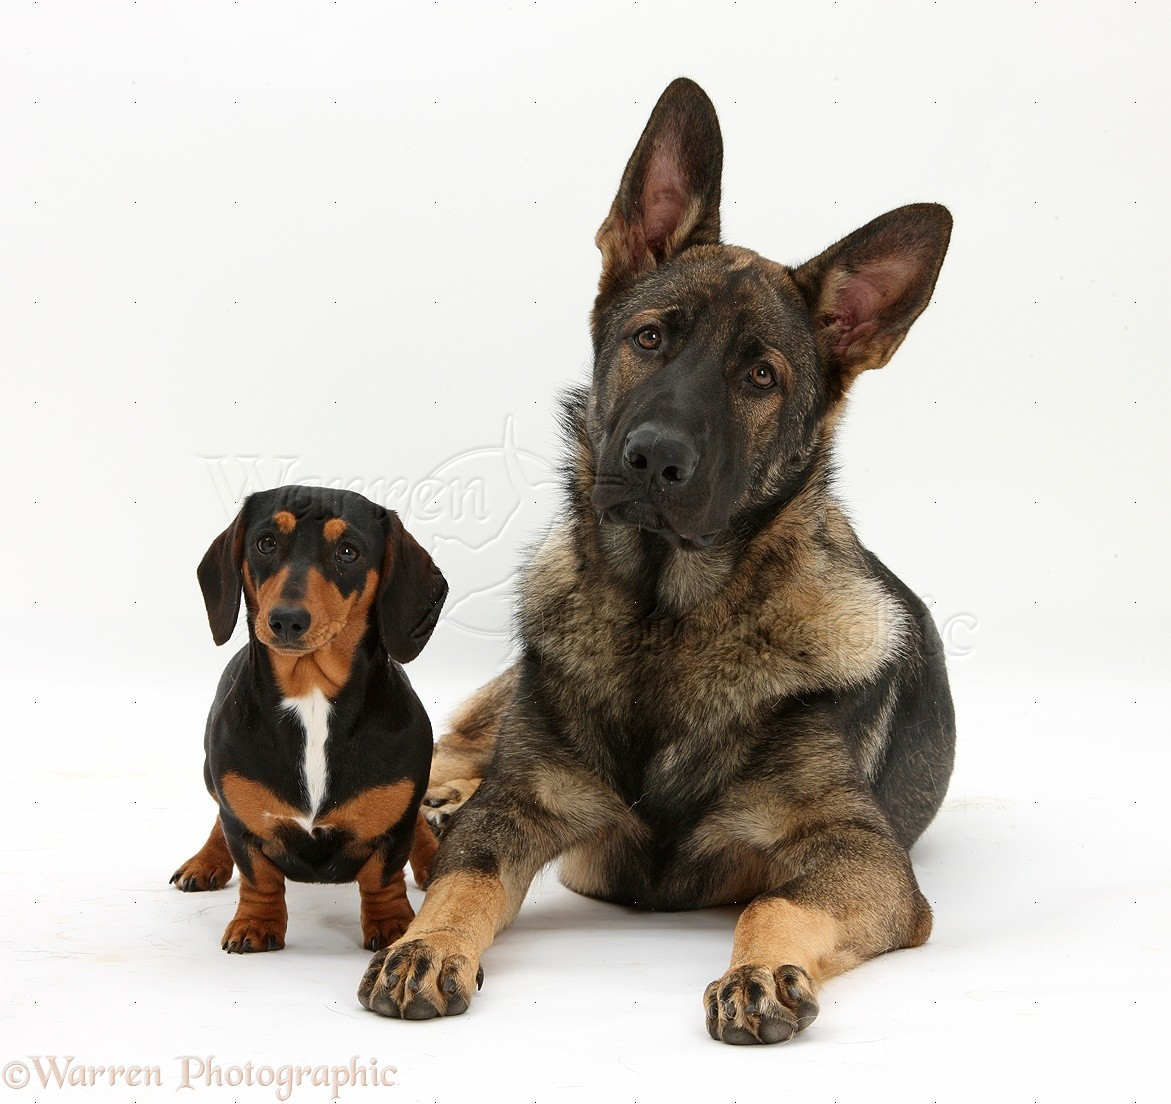 Dachshund German Shepherd Mix Puppies Tricolour dachshund and